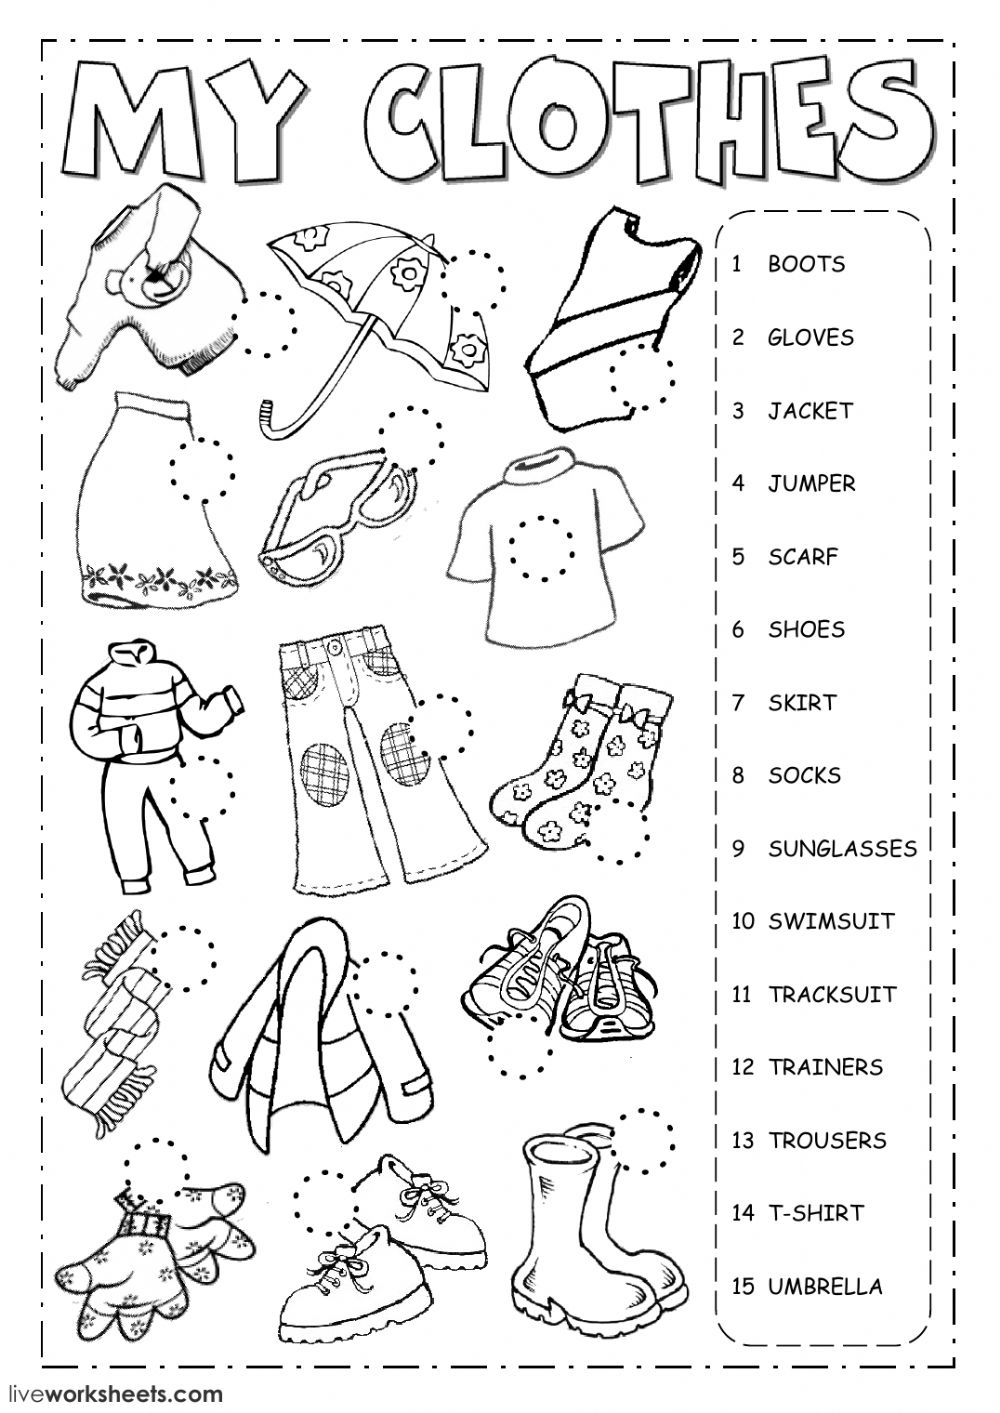 The clothes: Clothes worksheet